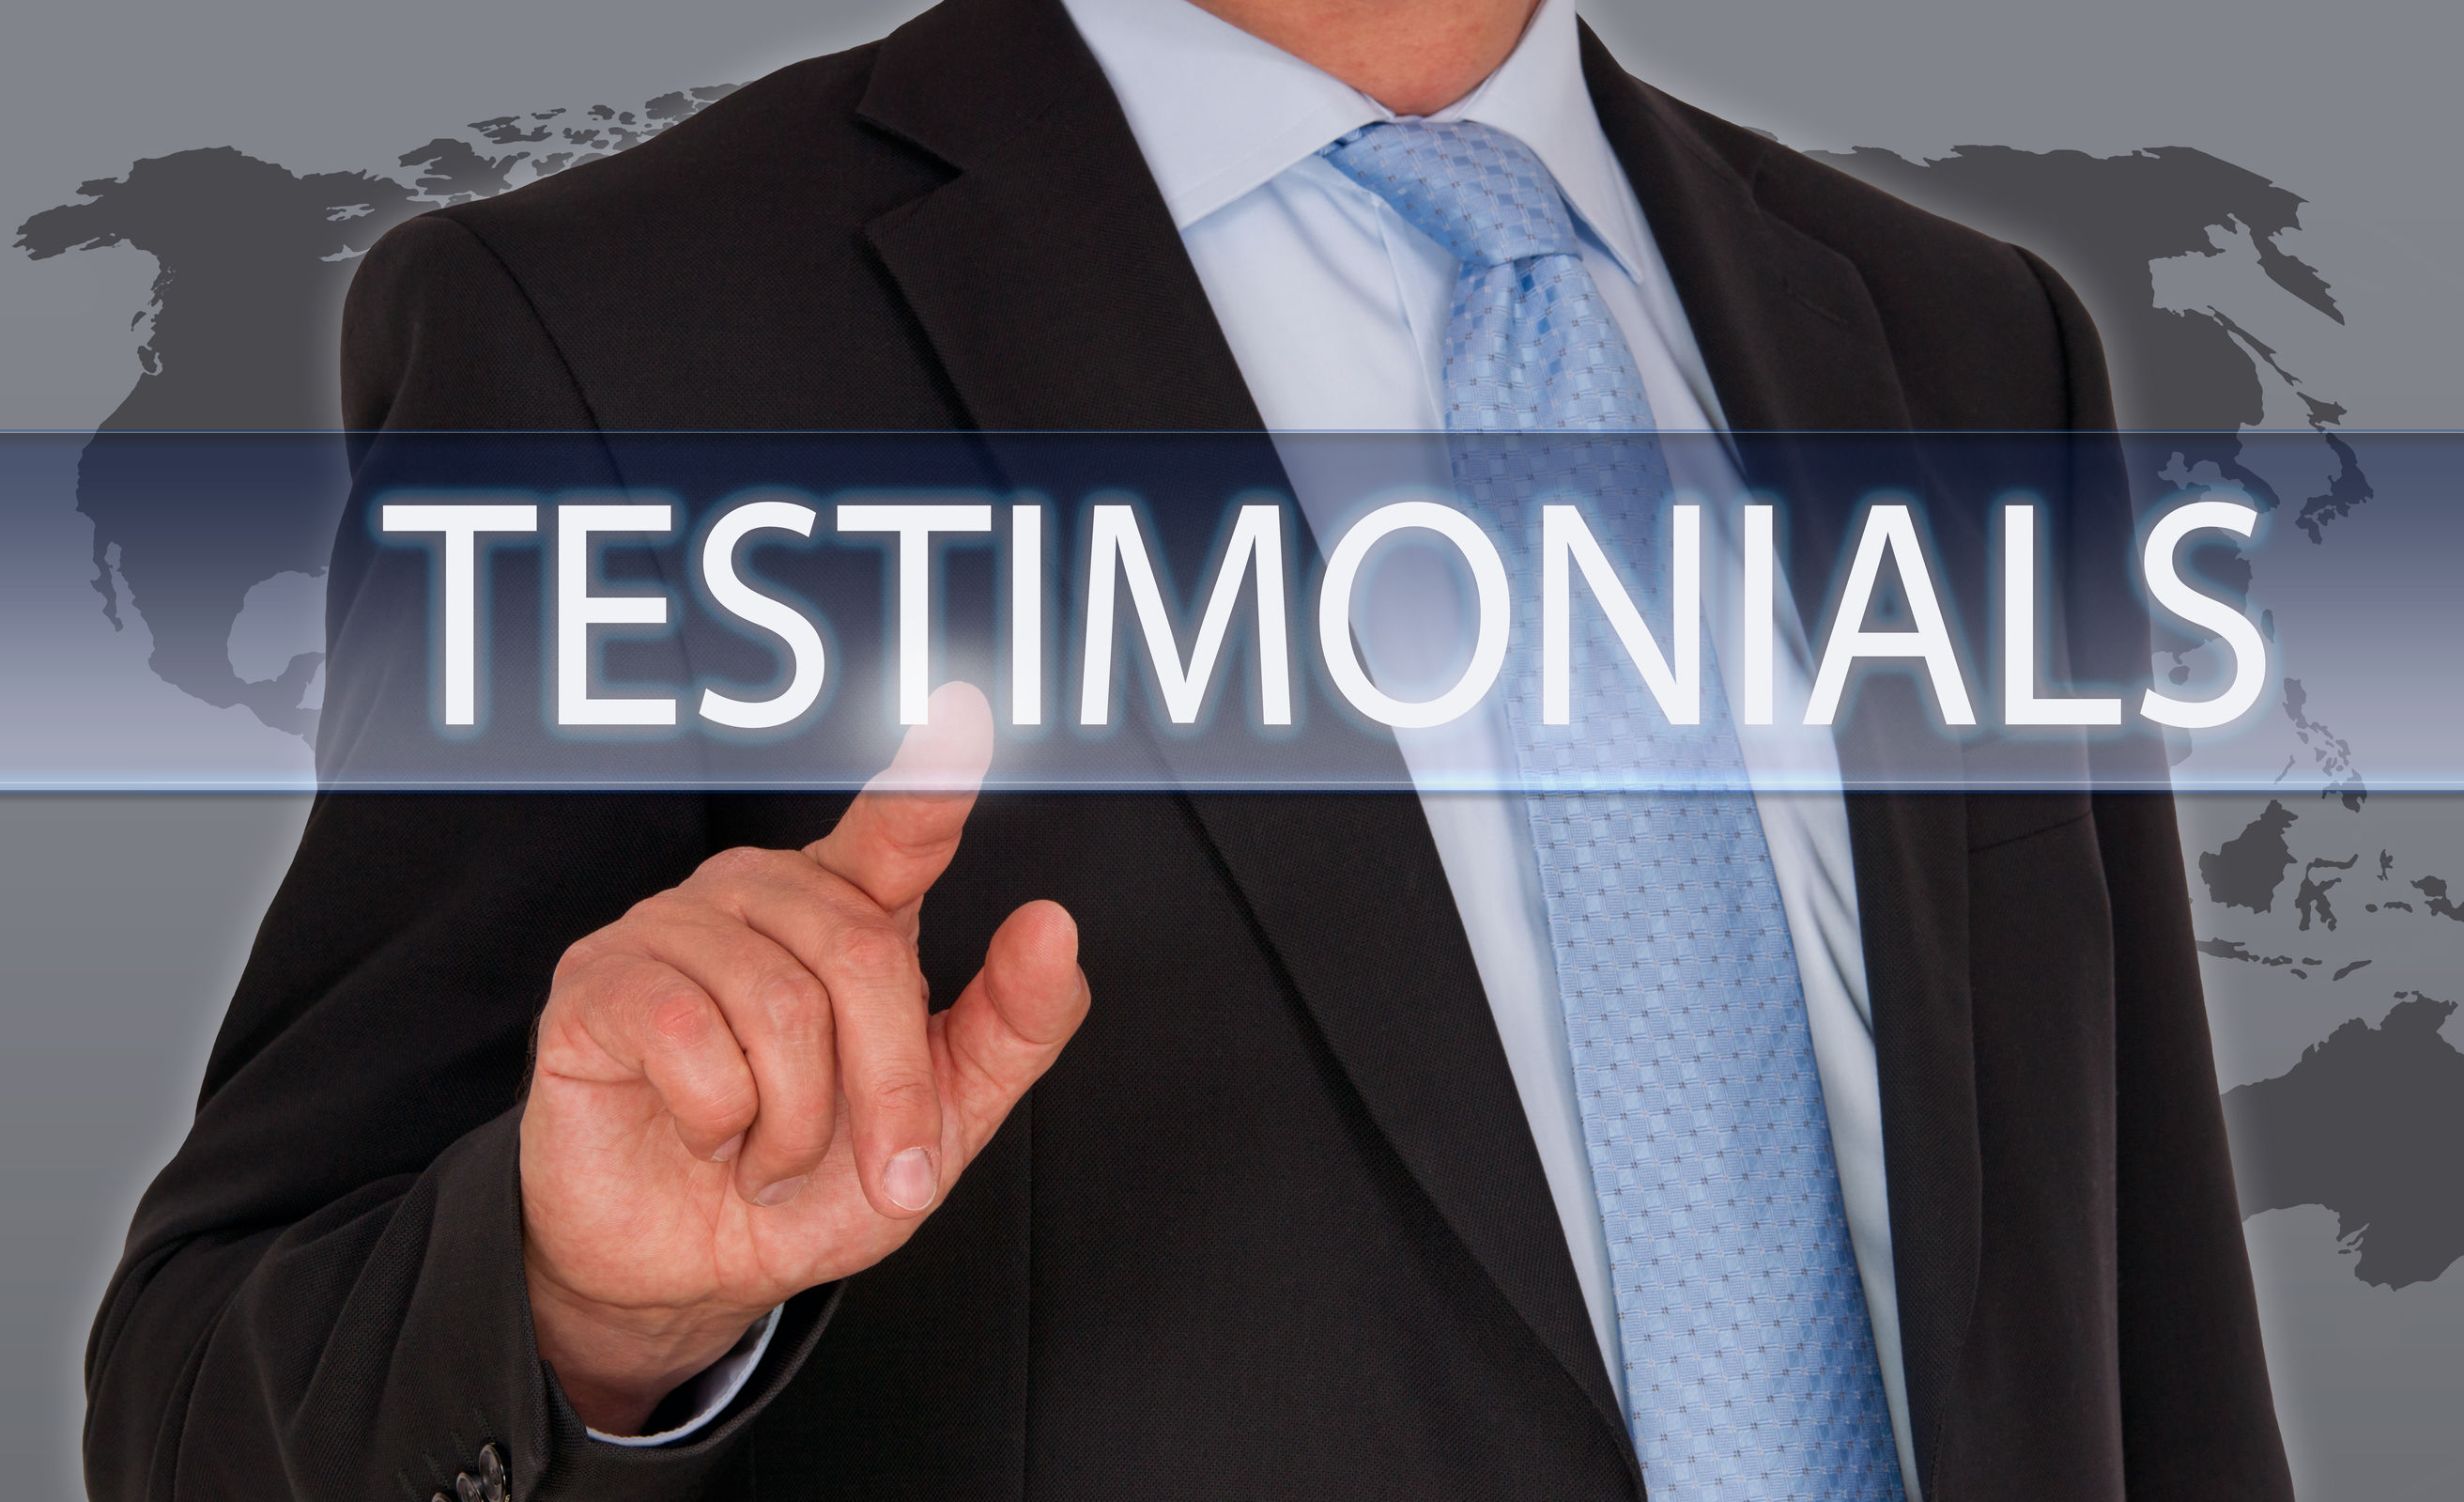 Testimonials That Boost Your Street Cred